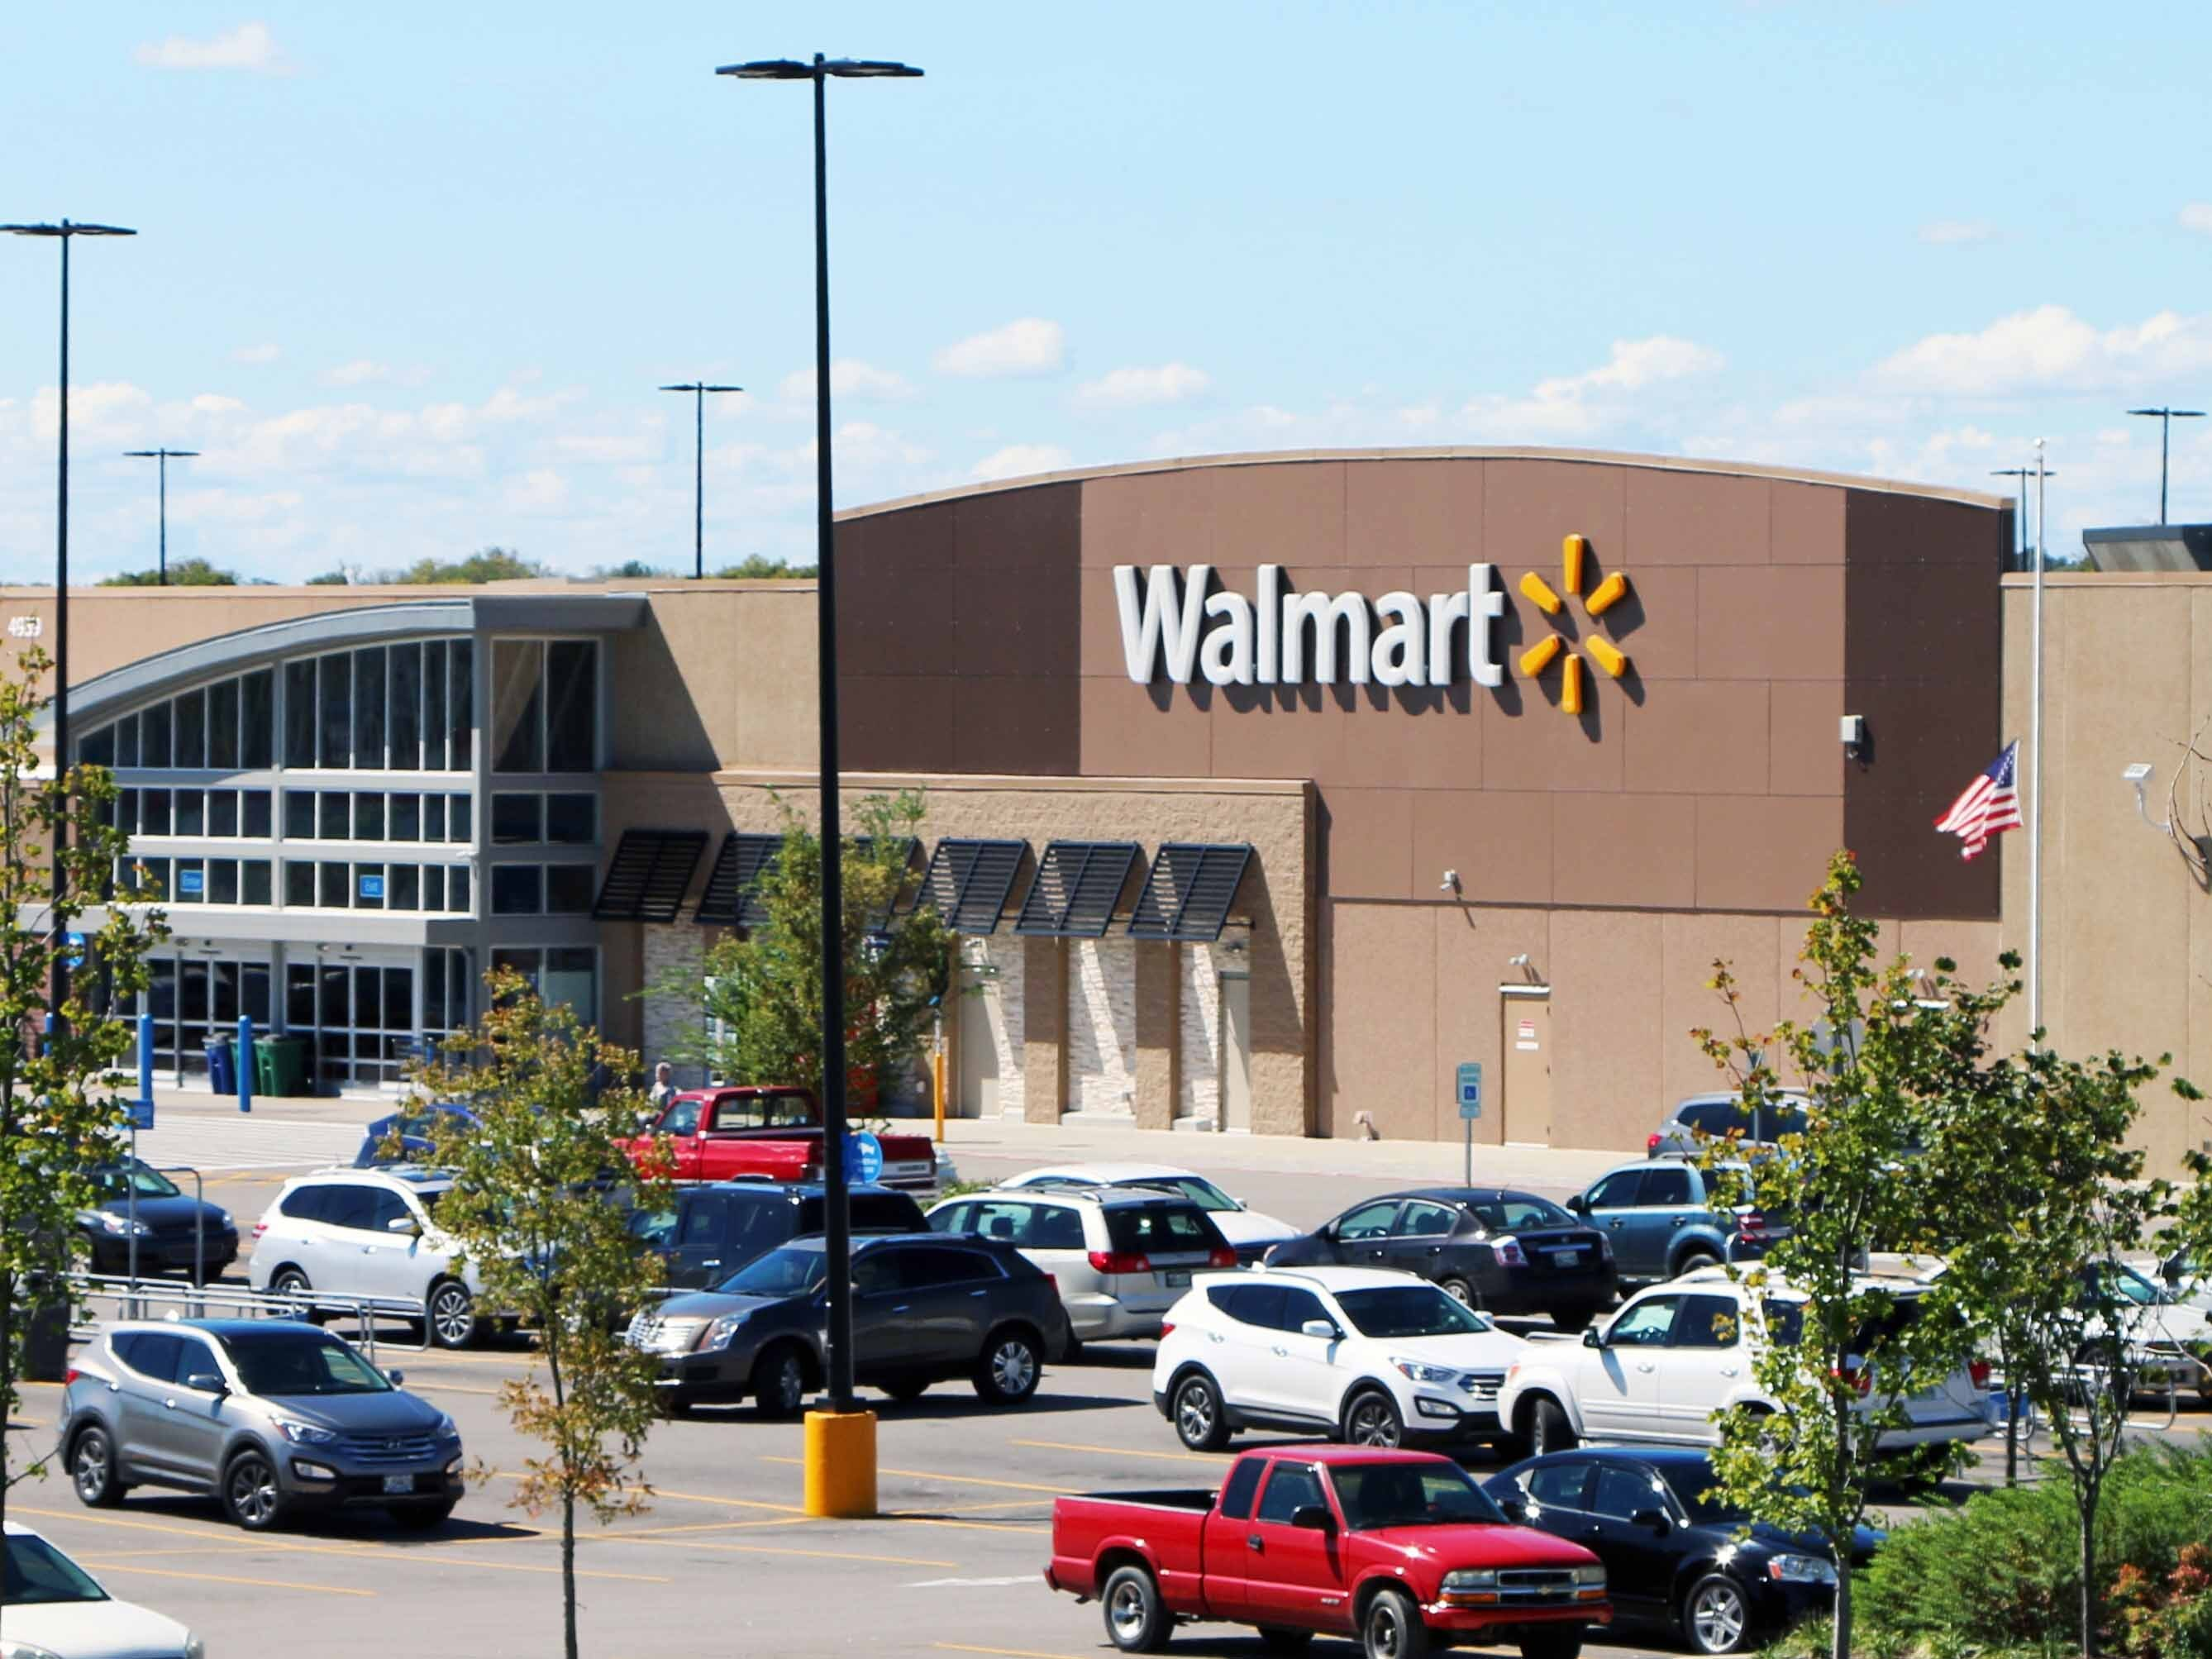 Walmart joins Starbucks, Best Buy and others in requiring patrons to wear masks in store